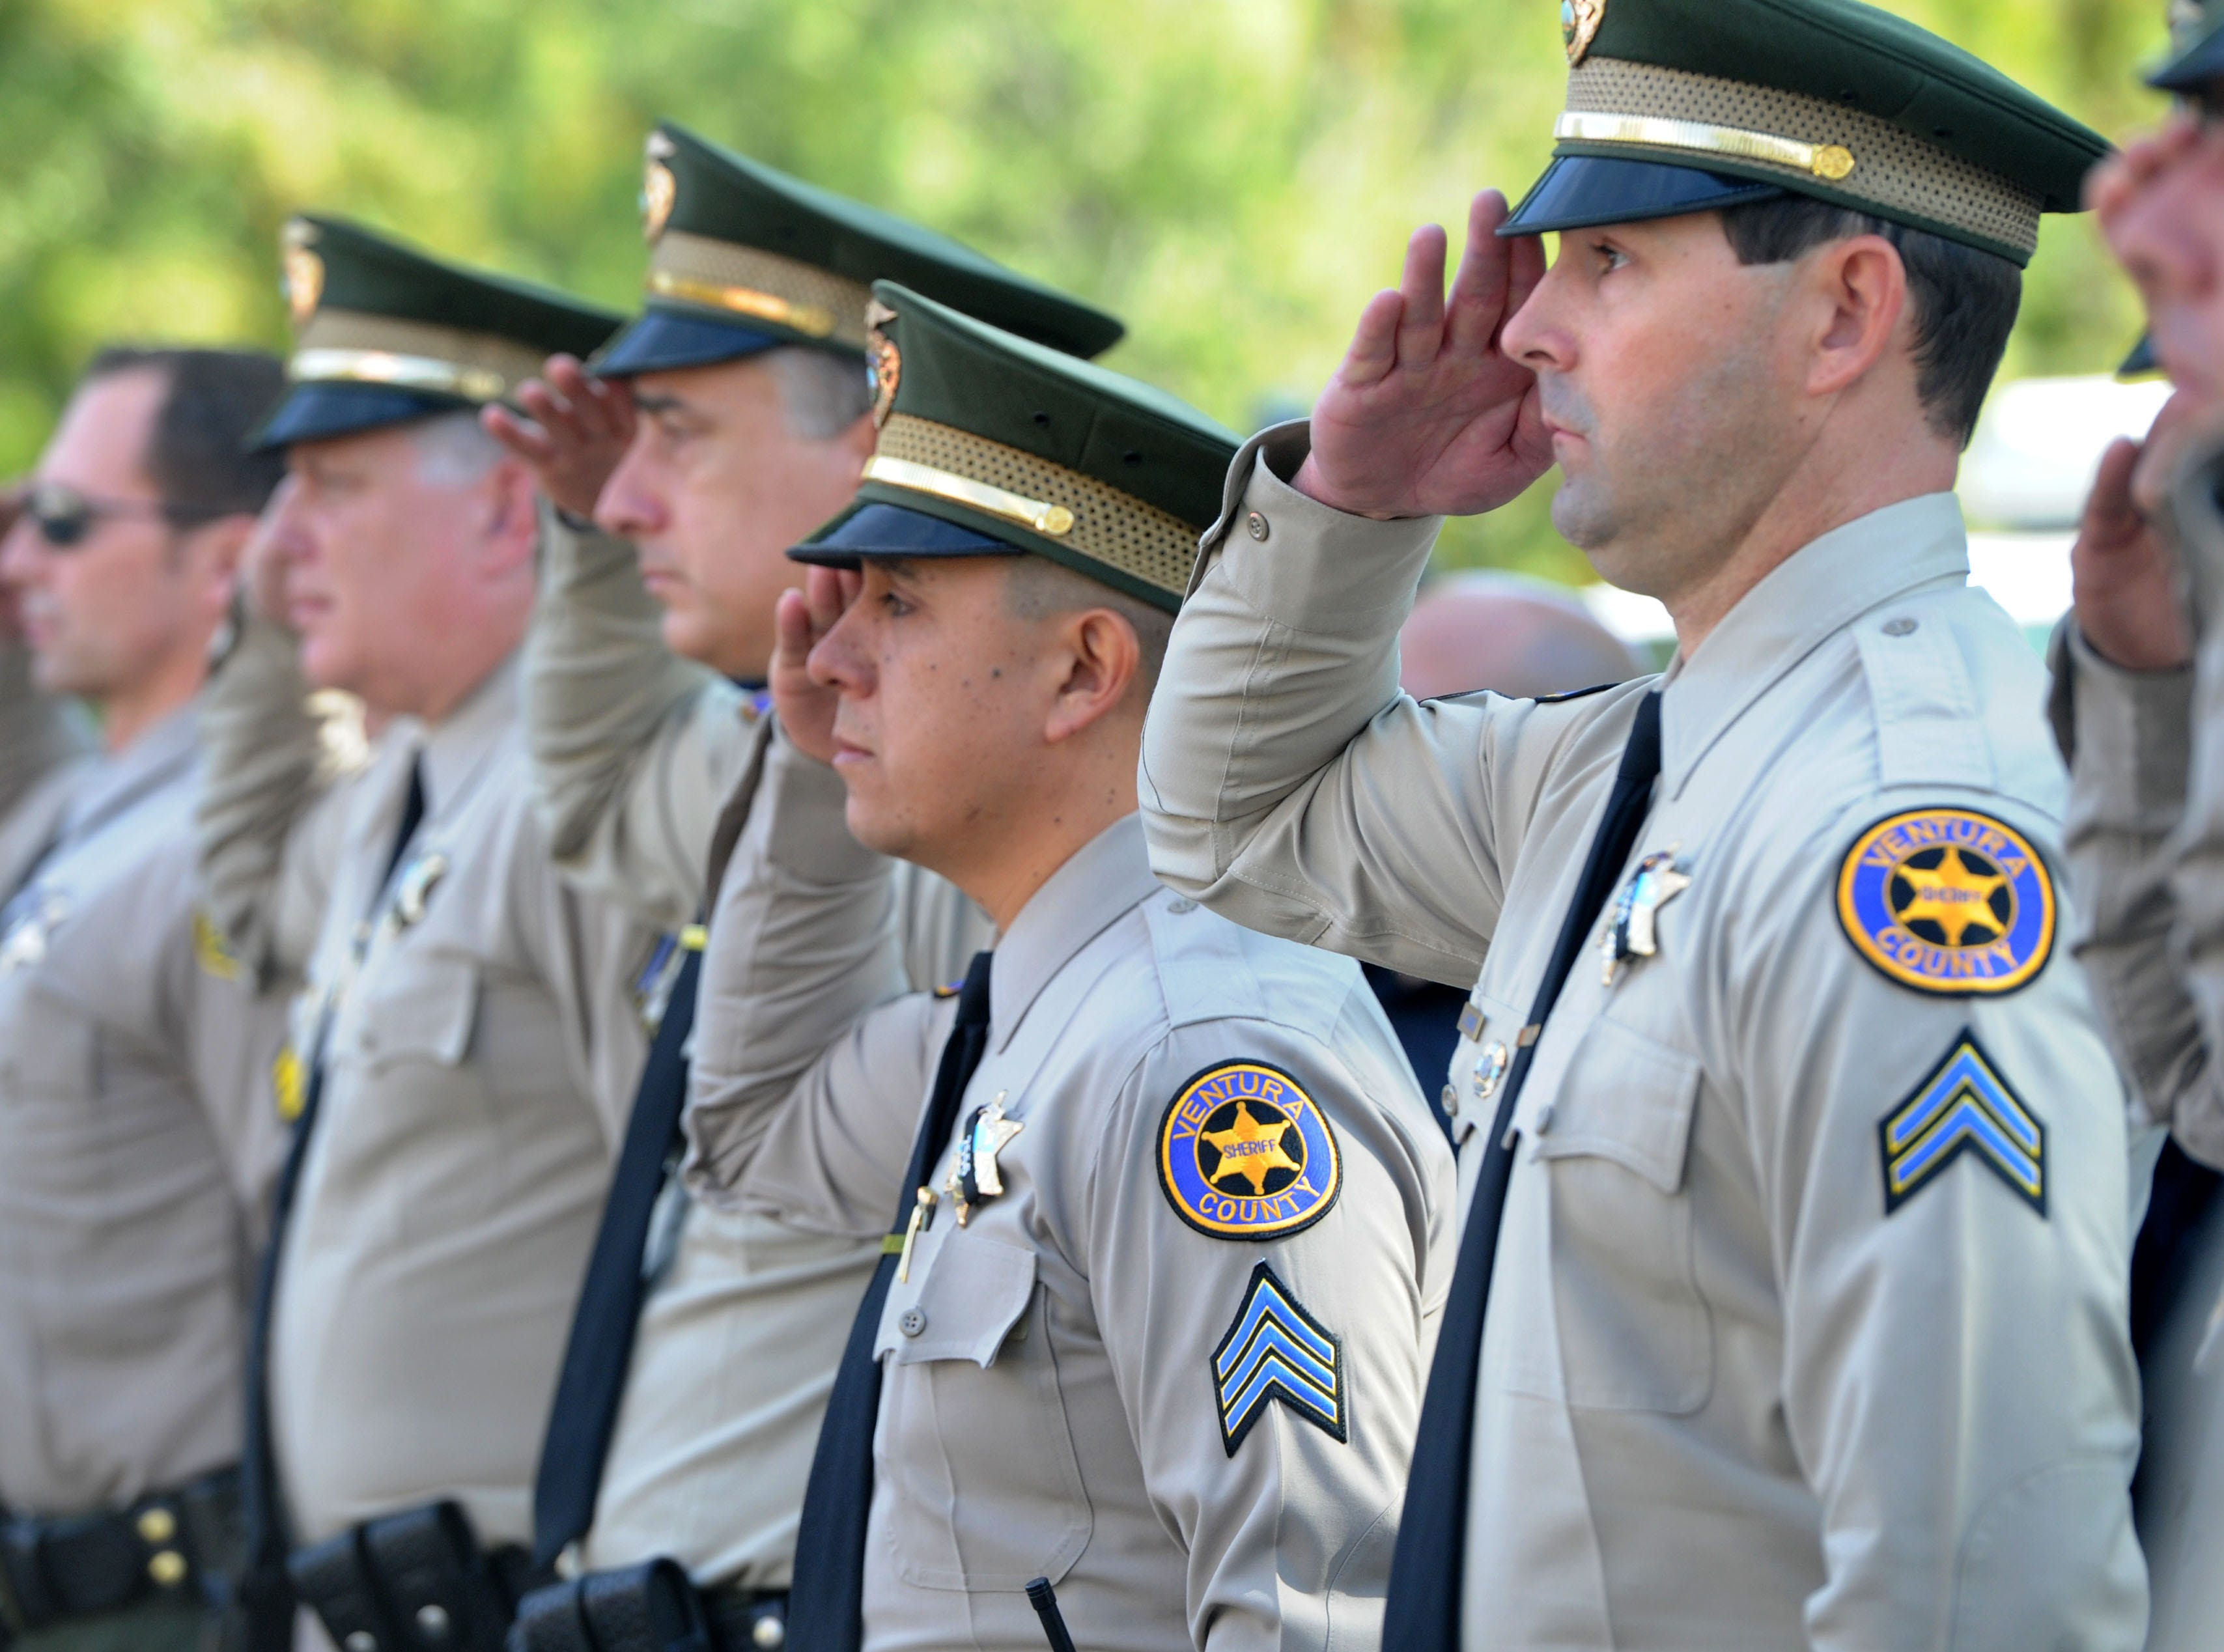 Law enforcement personnel salute as the casket of Ventura County Sheriff's Office Sgt. Ron Helus is driven from his memorial service at Calvary Community Church Thursday. He was later buried at Pierce Brothers Valley Oaks Memorial Park on Lindero Canyon Road.